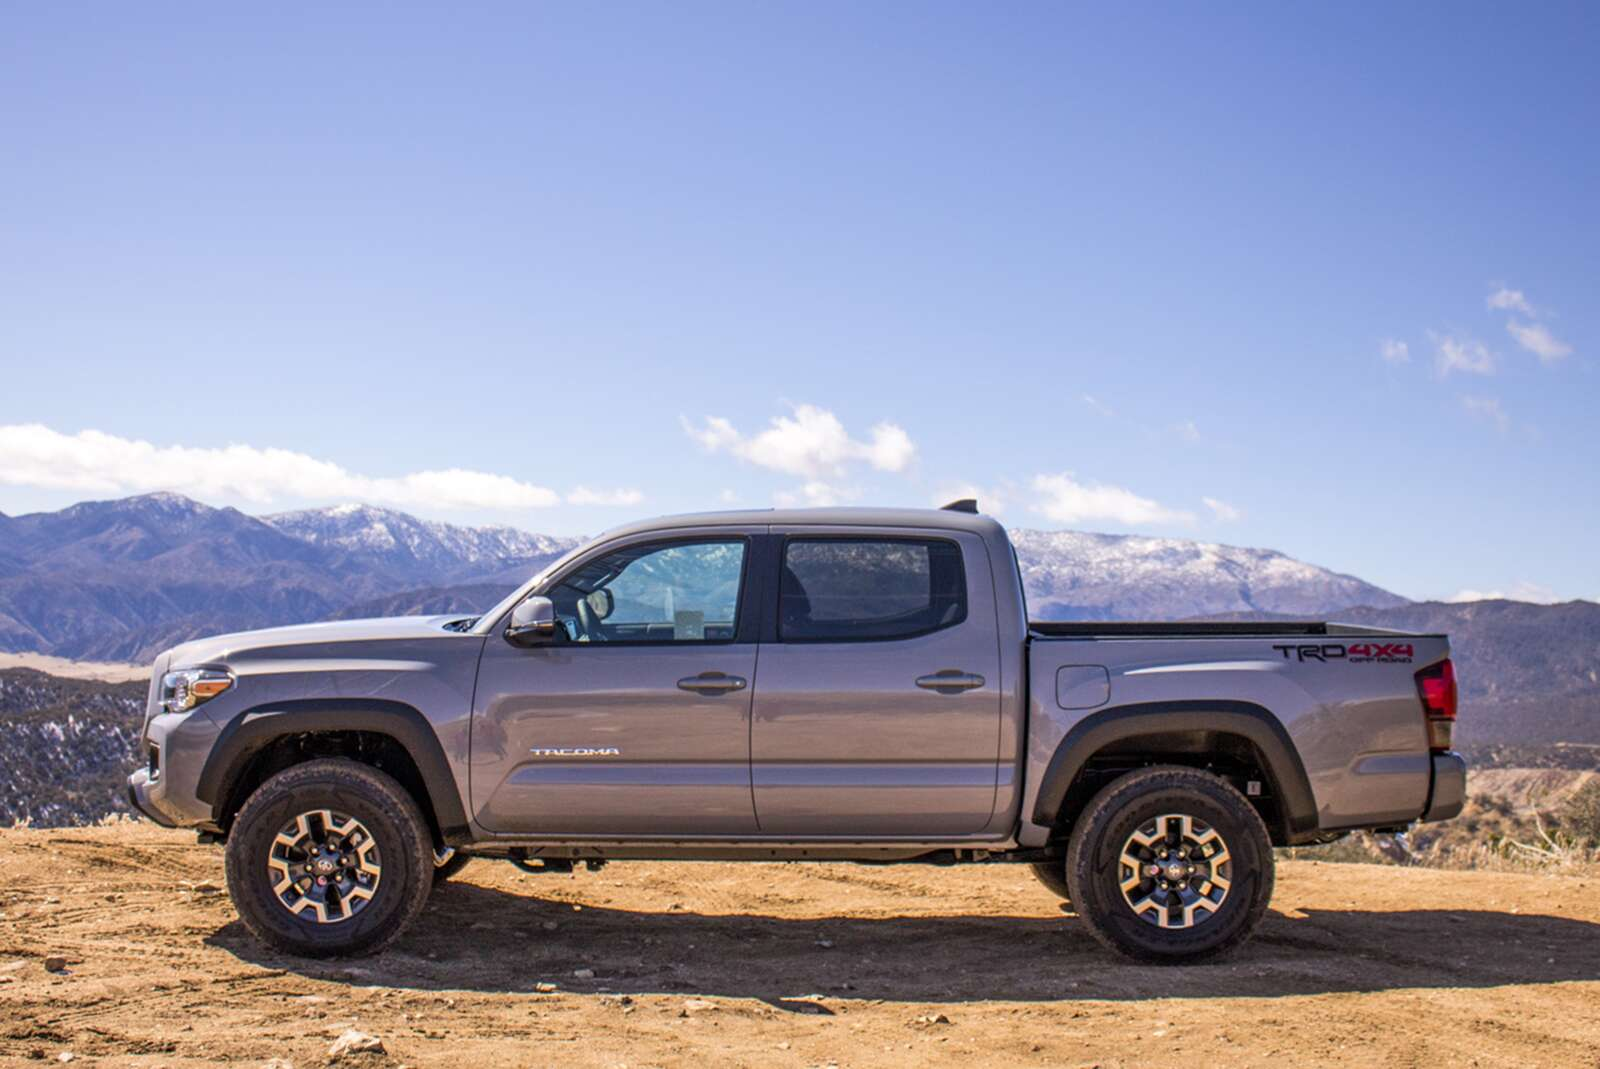 2018 Toyota Tacoma Trd Off Road Review An Apocalypse Proof Pickup Long Bed Fuel Hostage Wheels Kyle Cheromcha